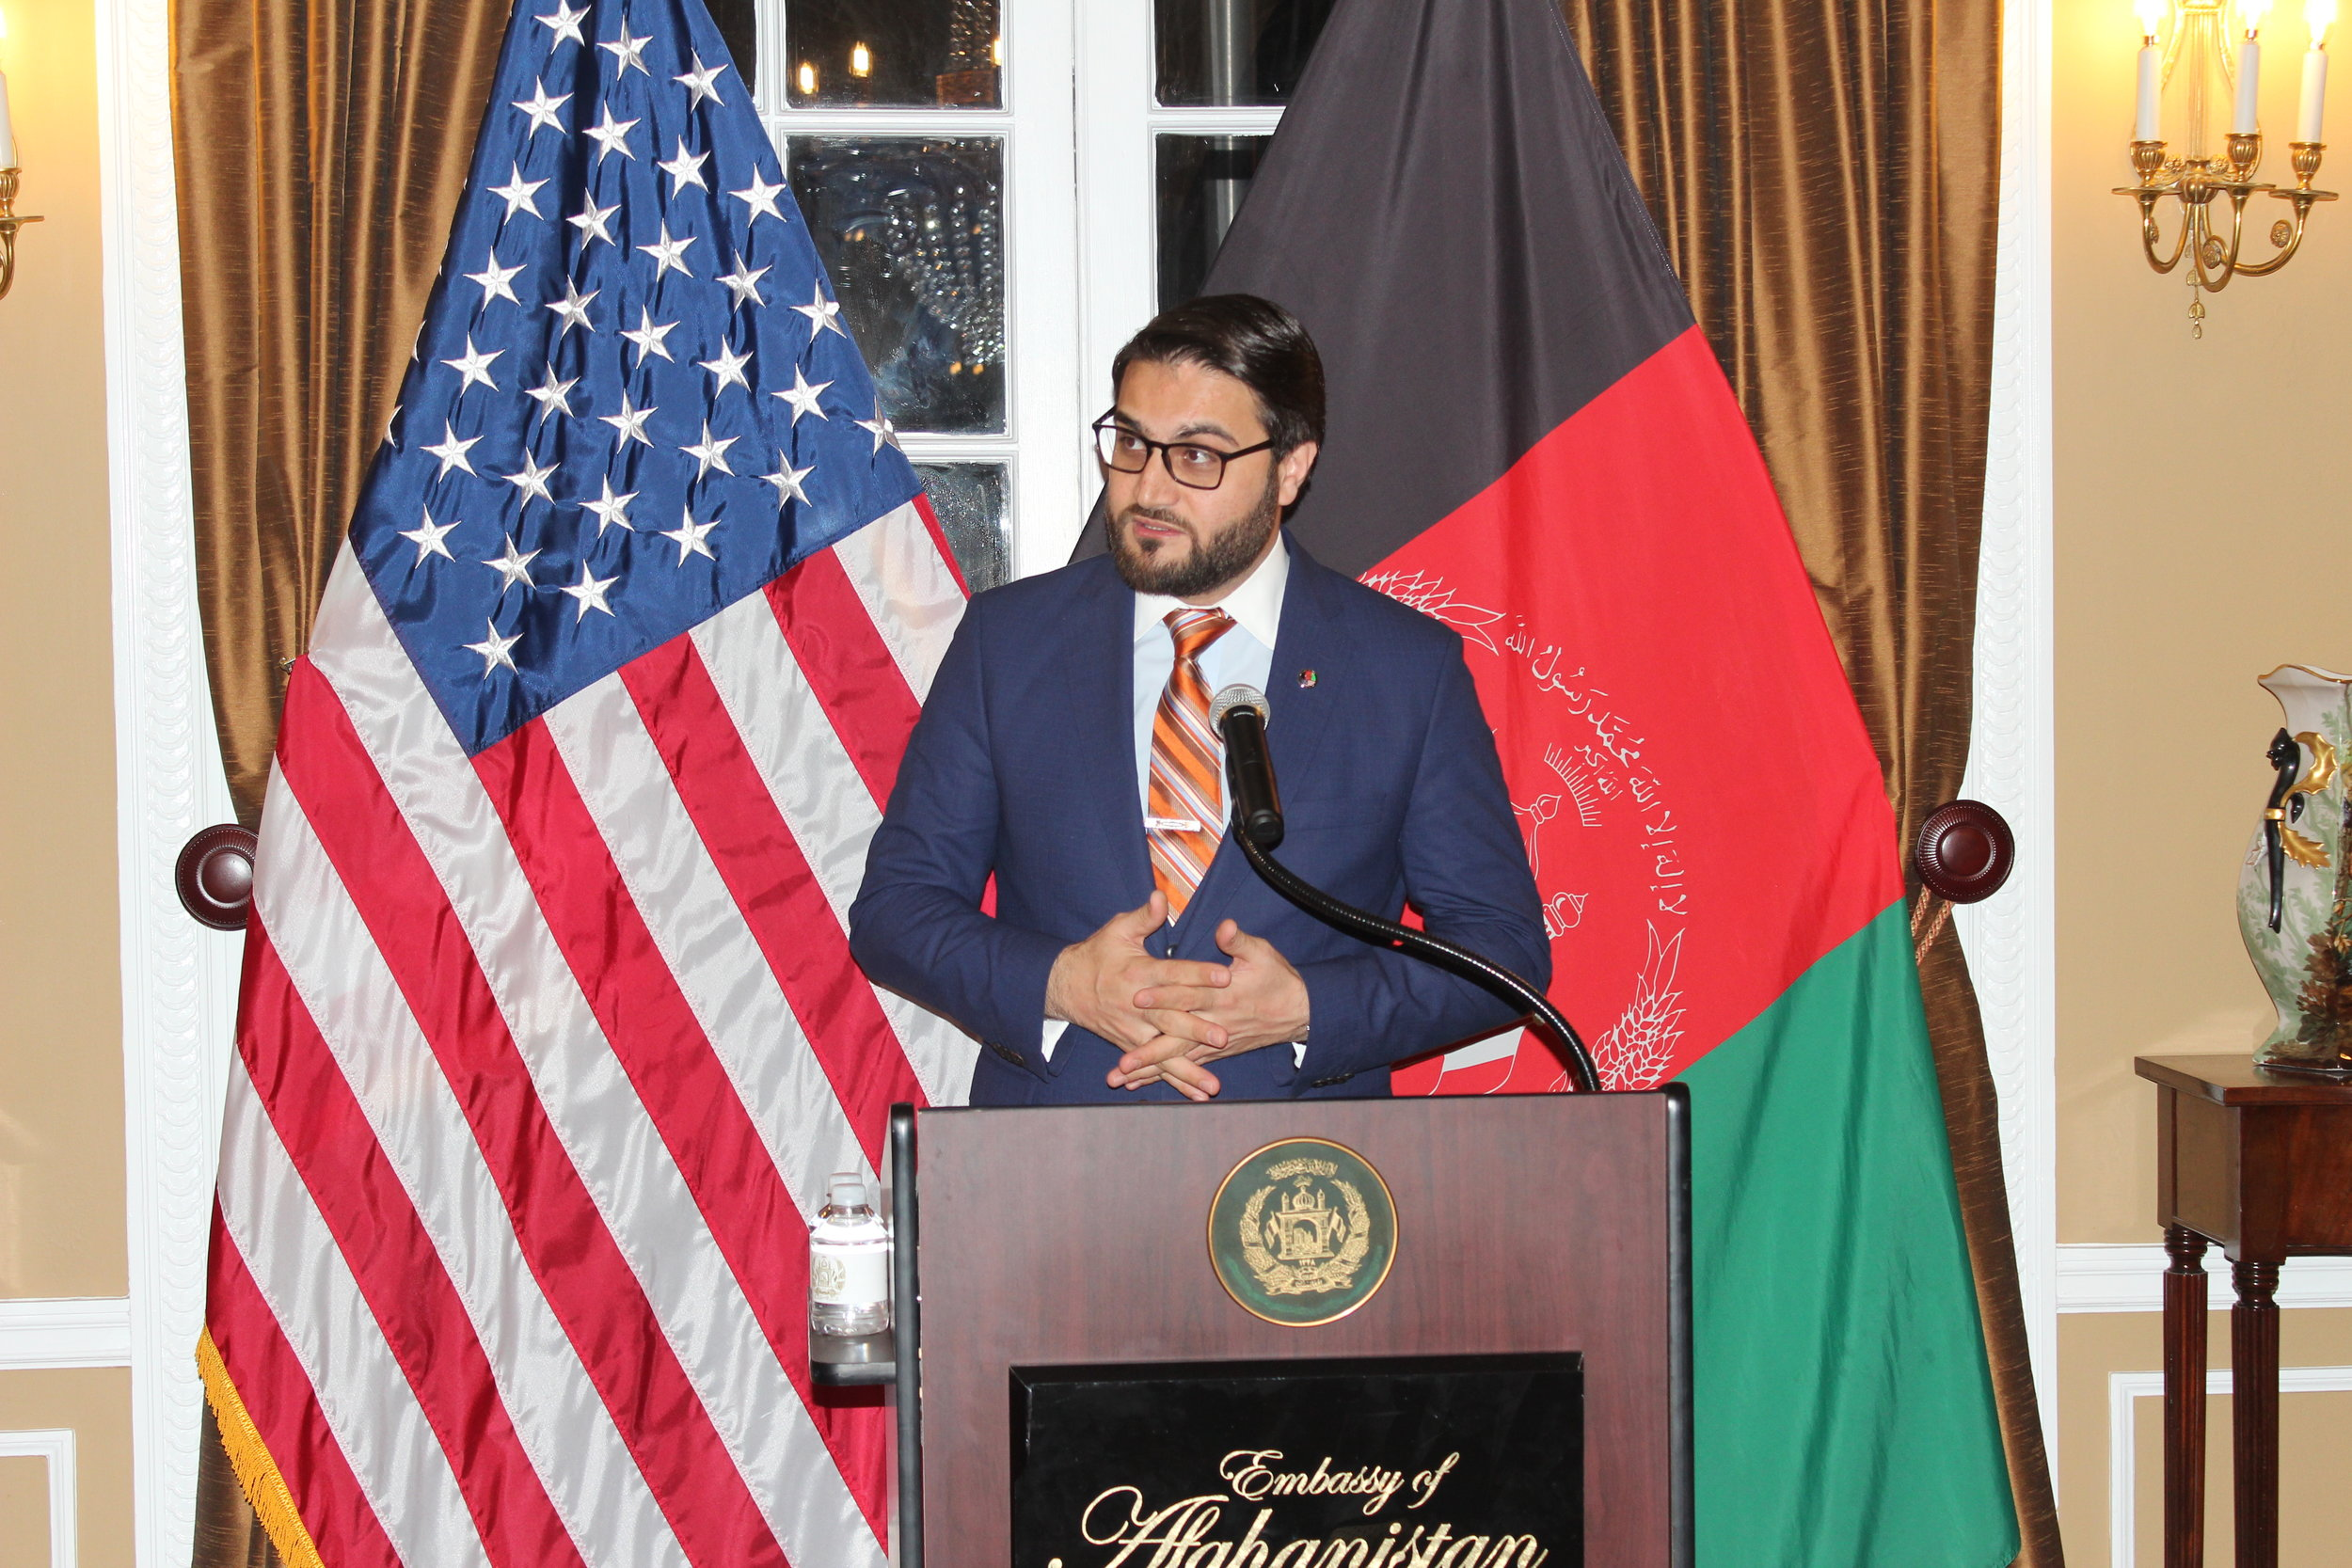 His Excellency Dr. Hamdullah Mohib of Afghanistan - Afghanistan Ambassador to the US